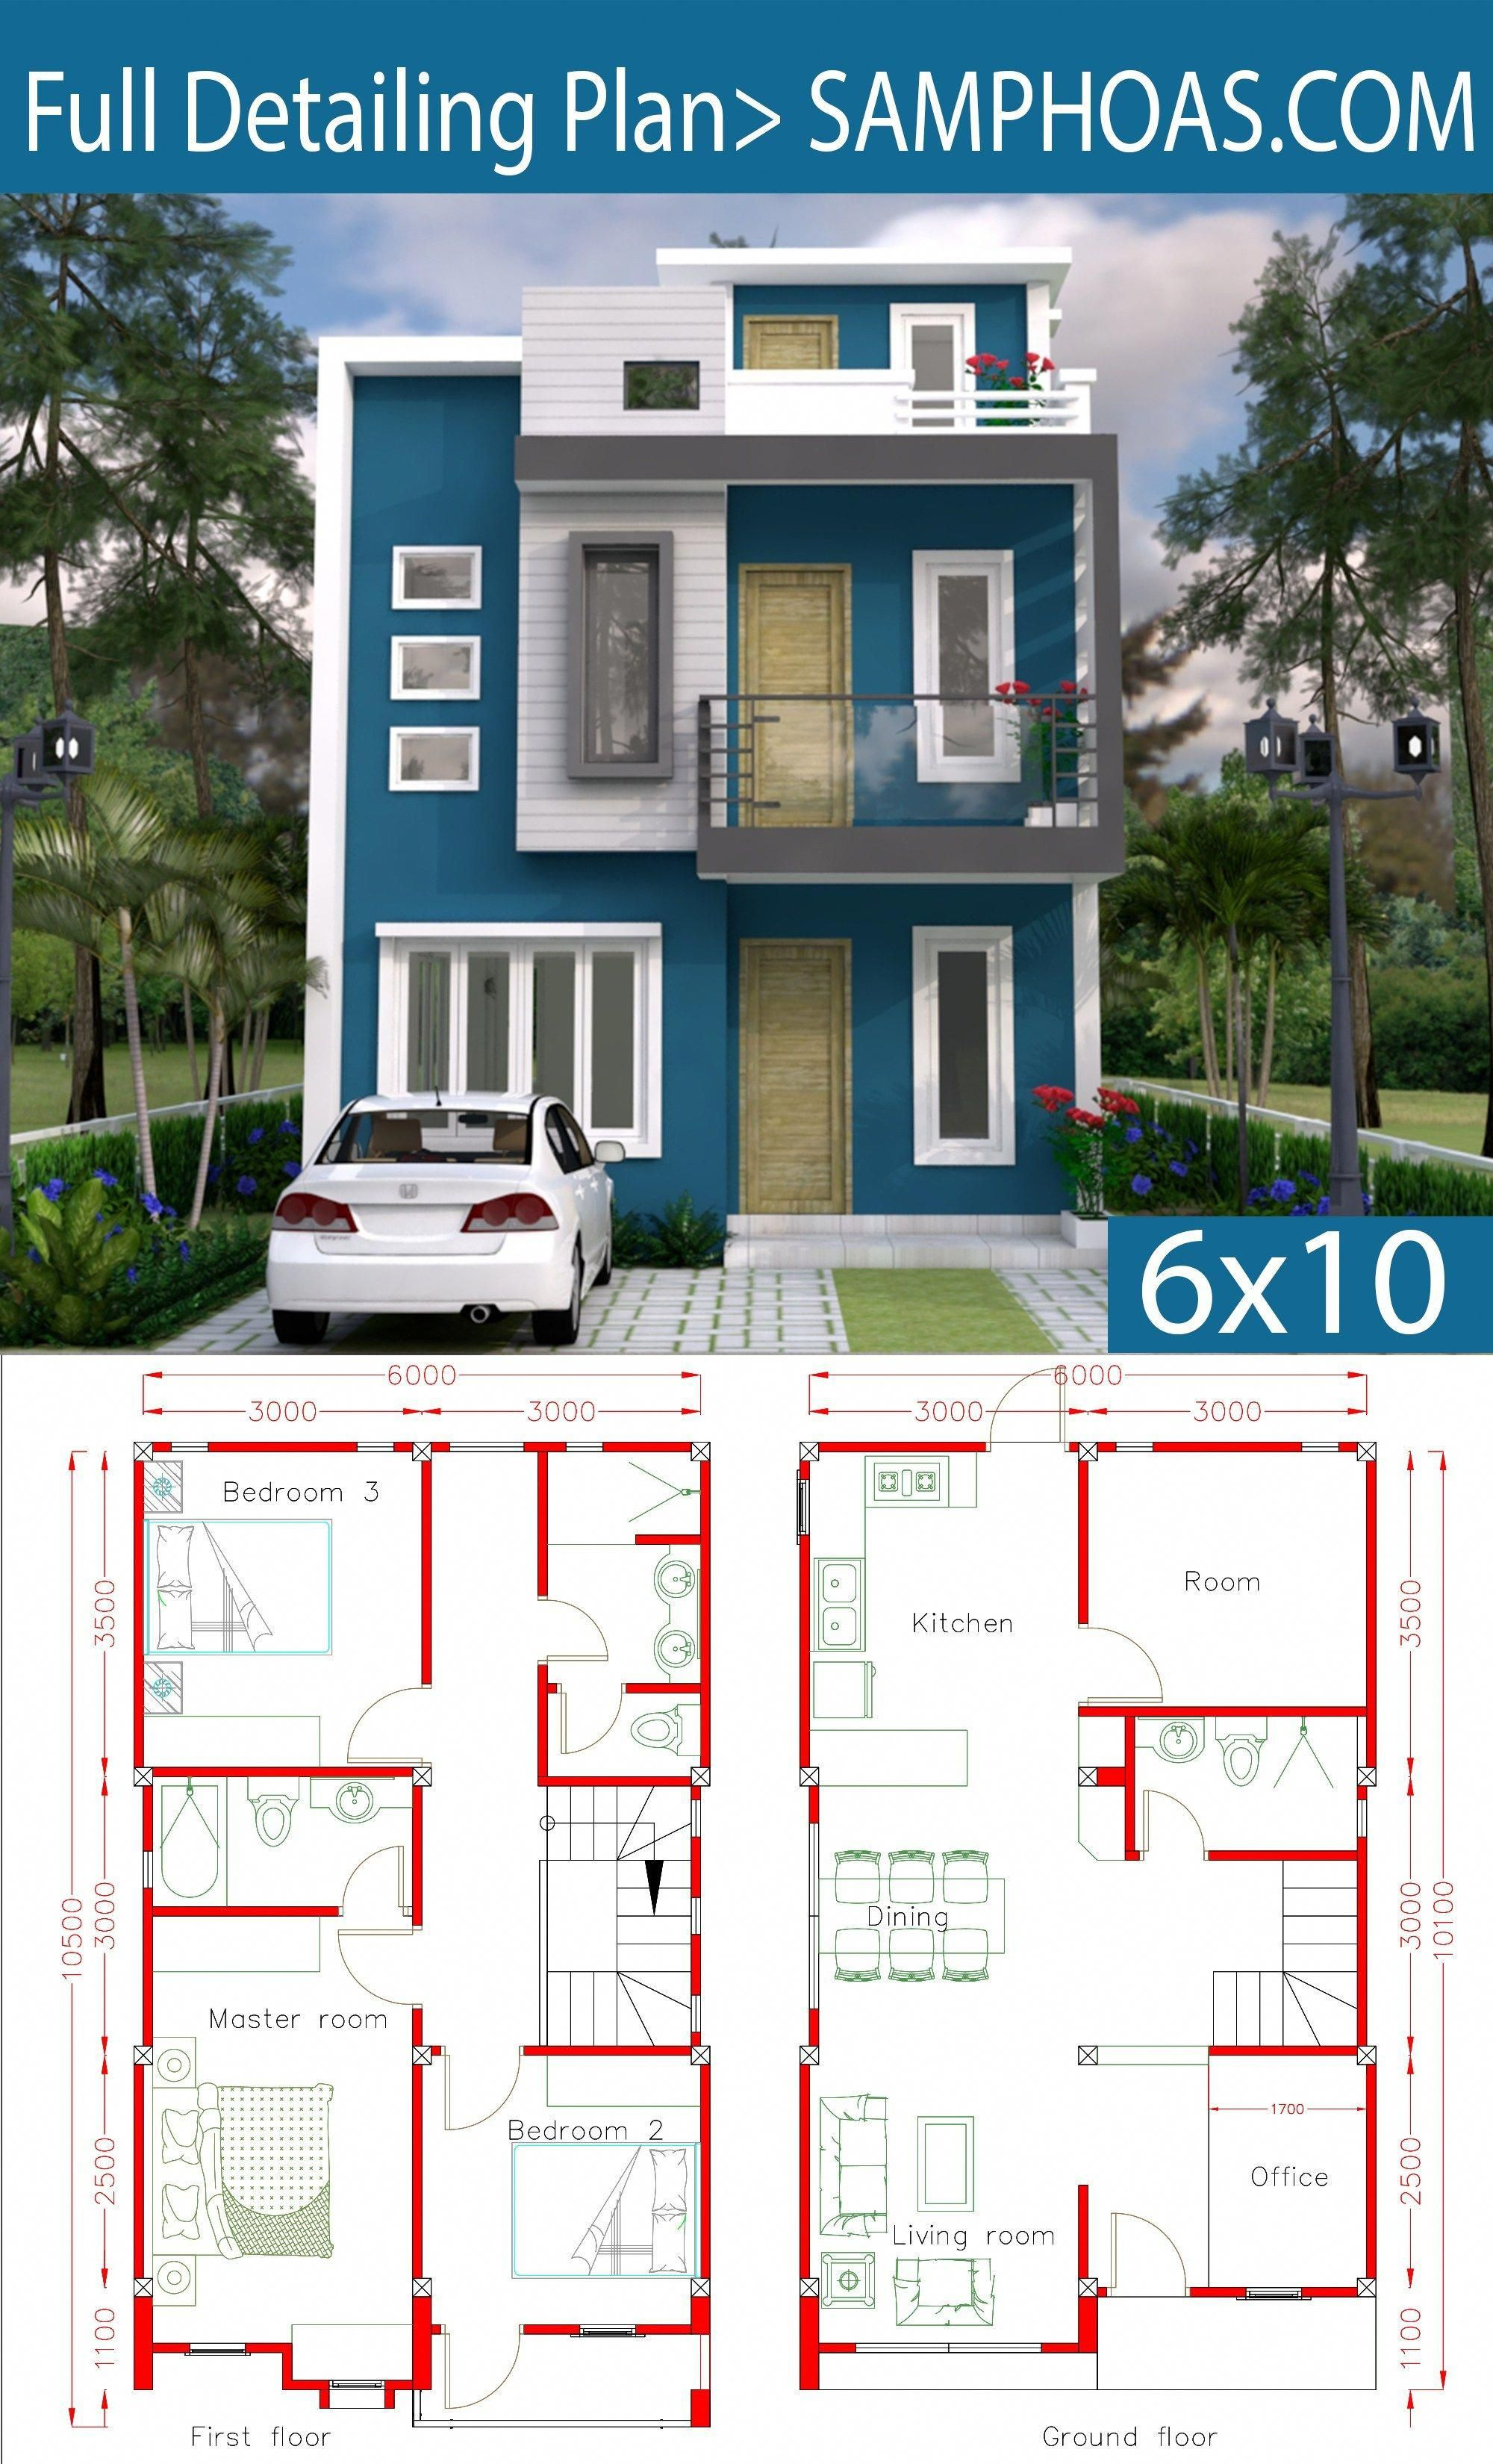 Dream Houses Design Dreamhouses Small House Design House Front